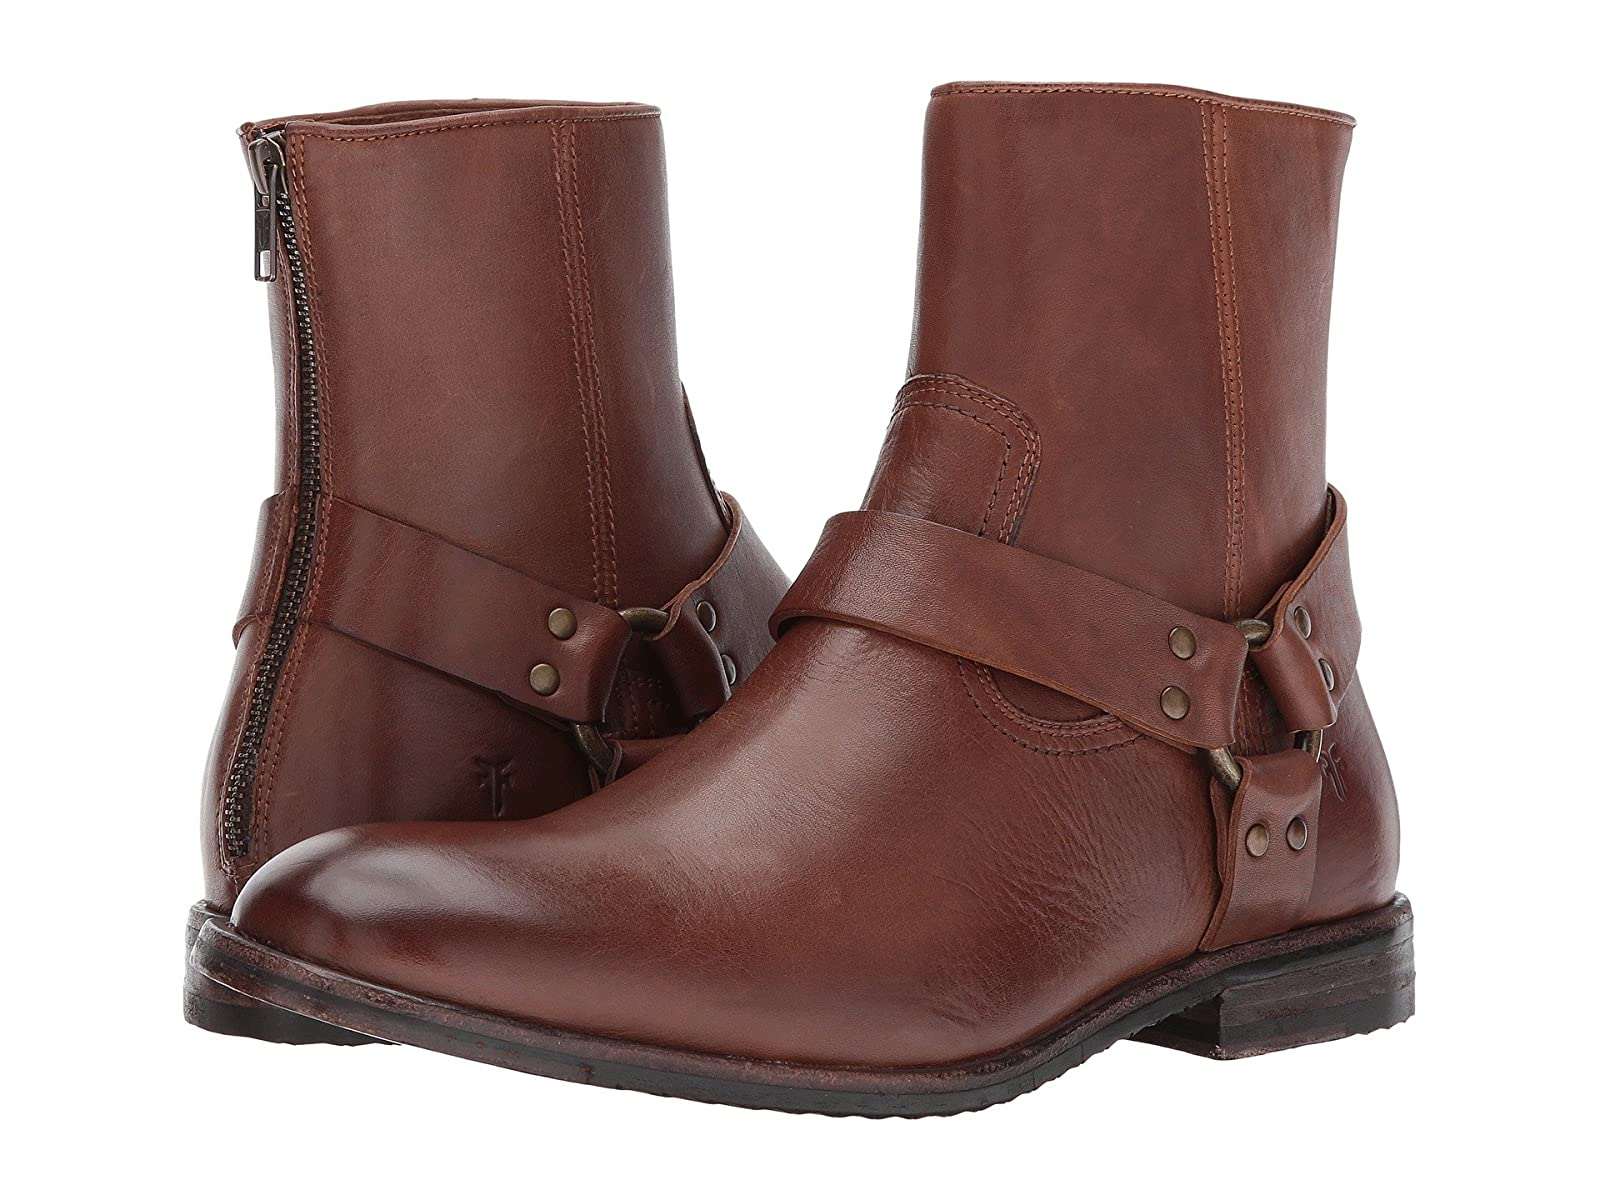 Frye Sam HarnessCheap and distinctive eye-catching shoes